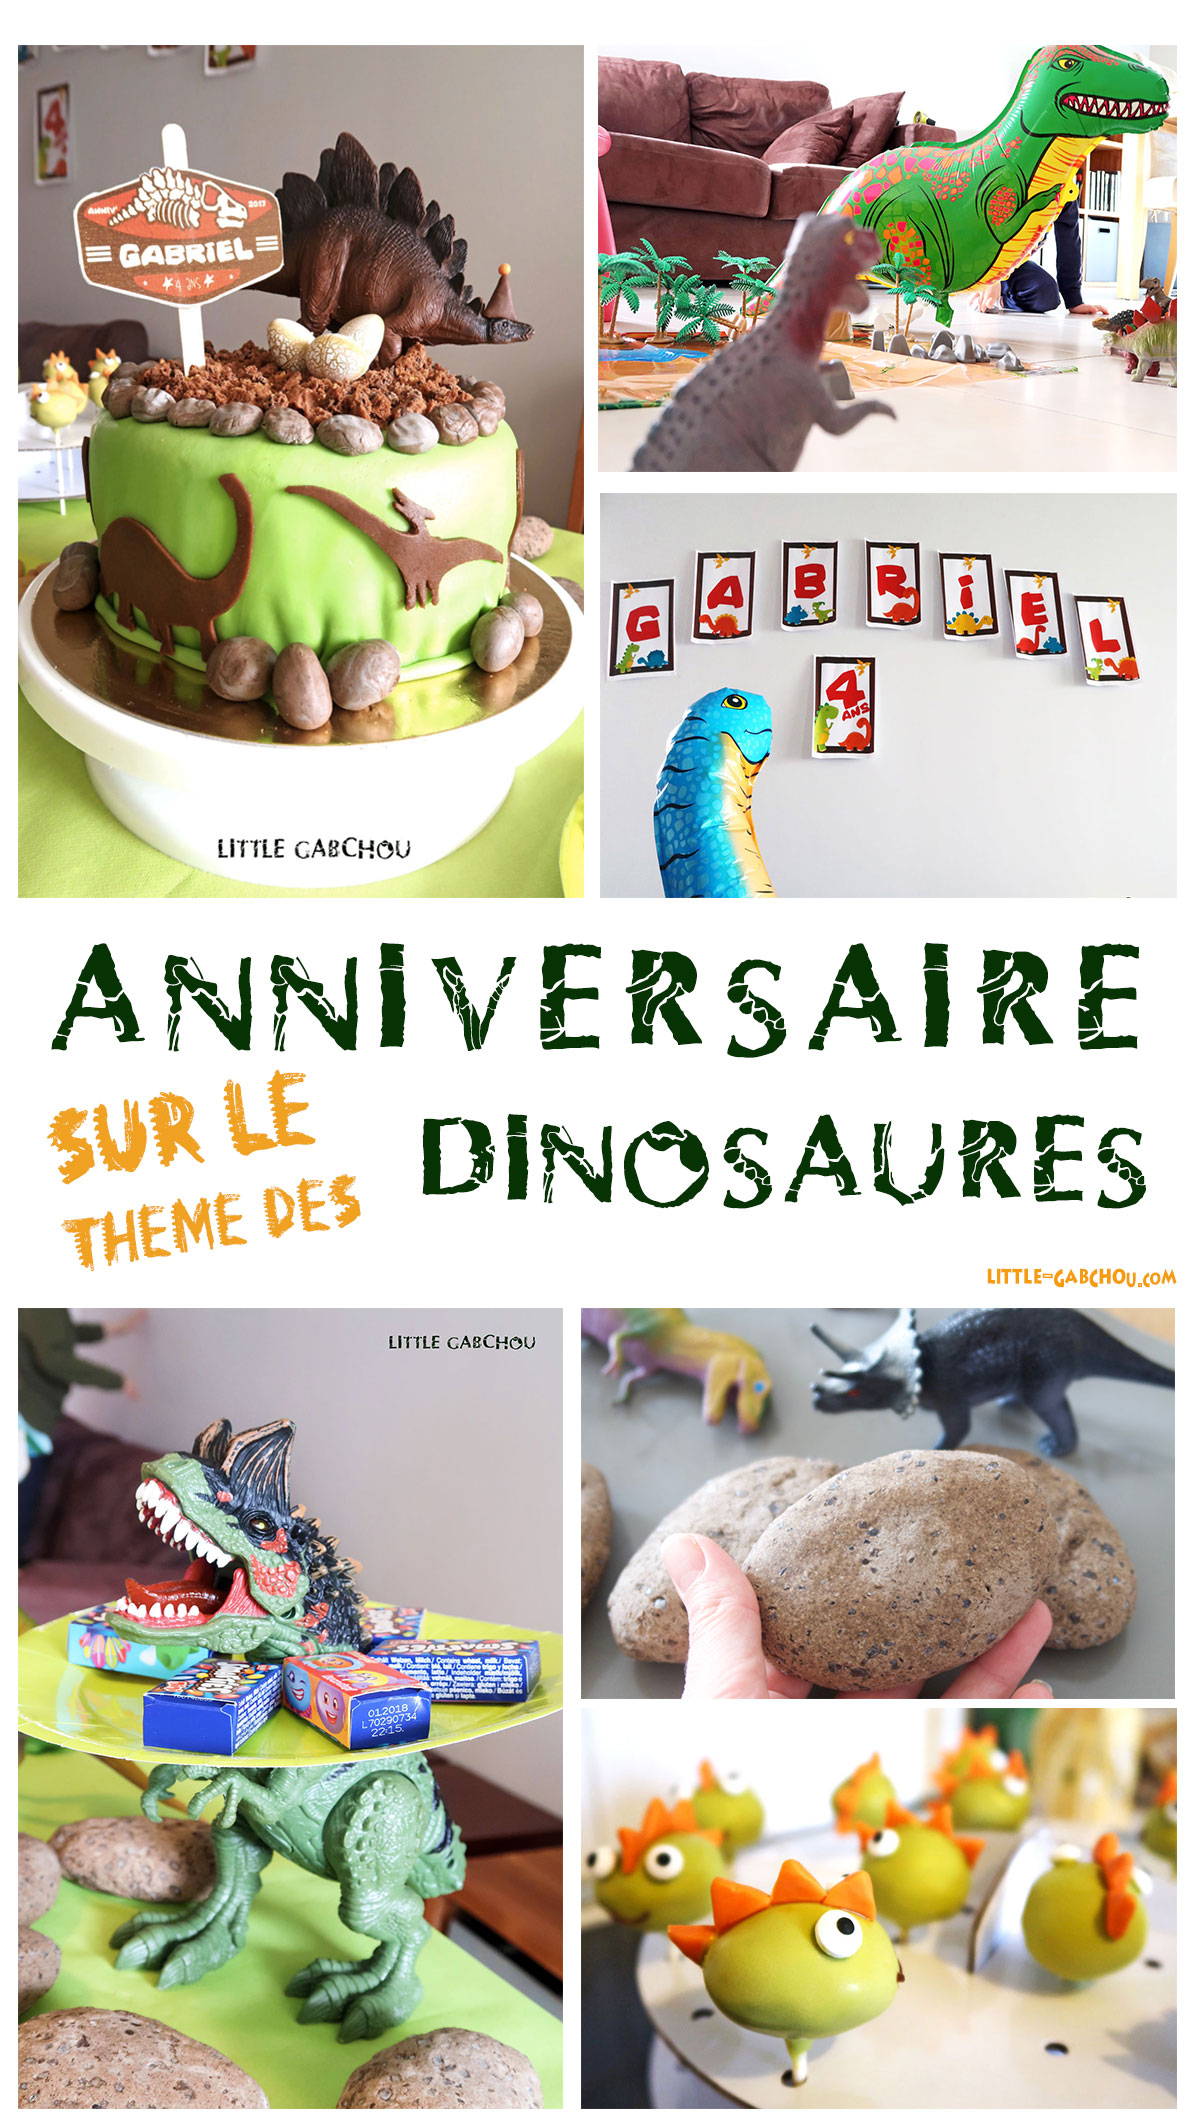 f te d 39 anniversaire sur le th me des dinosaures pour les 4 ans de gabchousaure. Black Bedroom Furniture Sets. Home Design Ideas